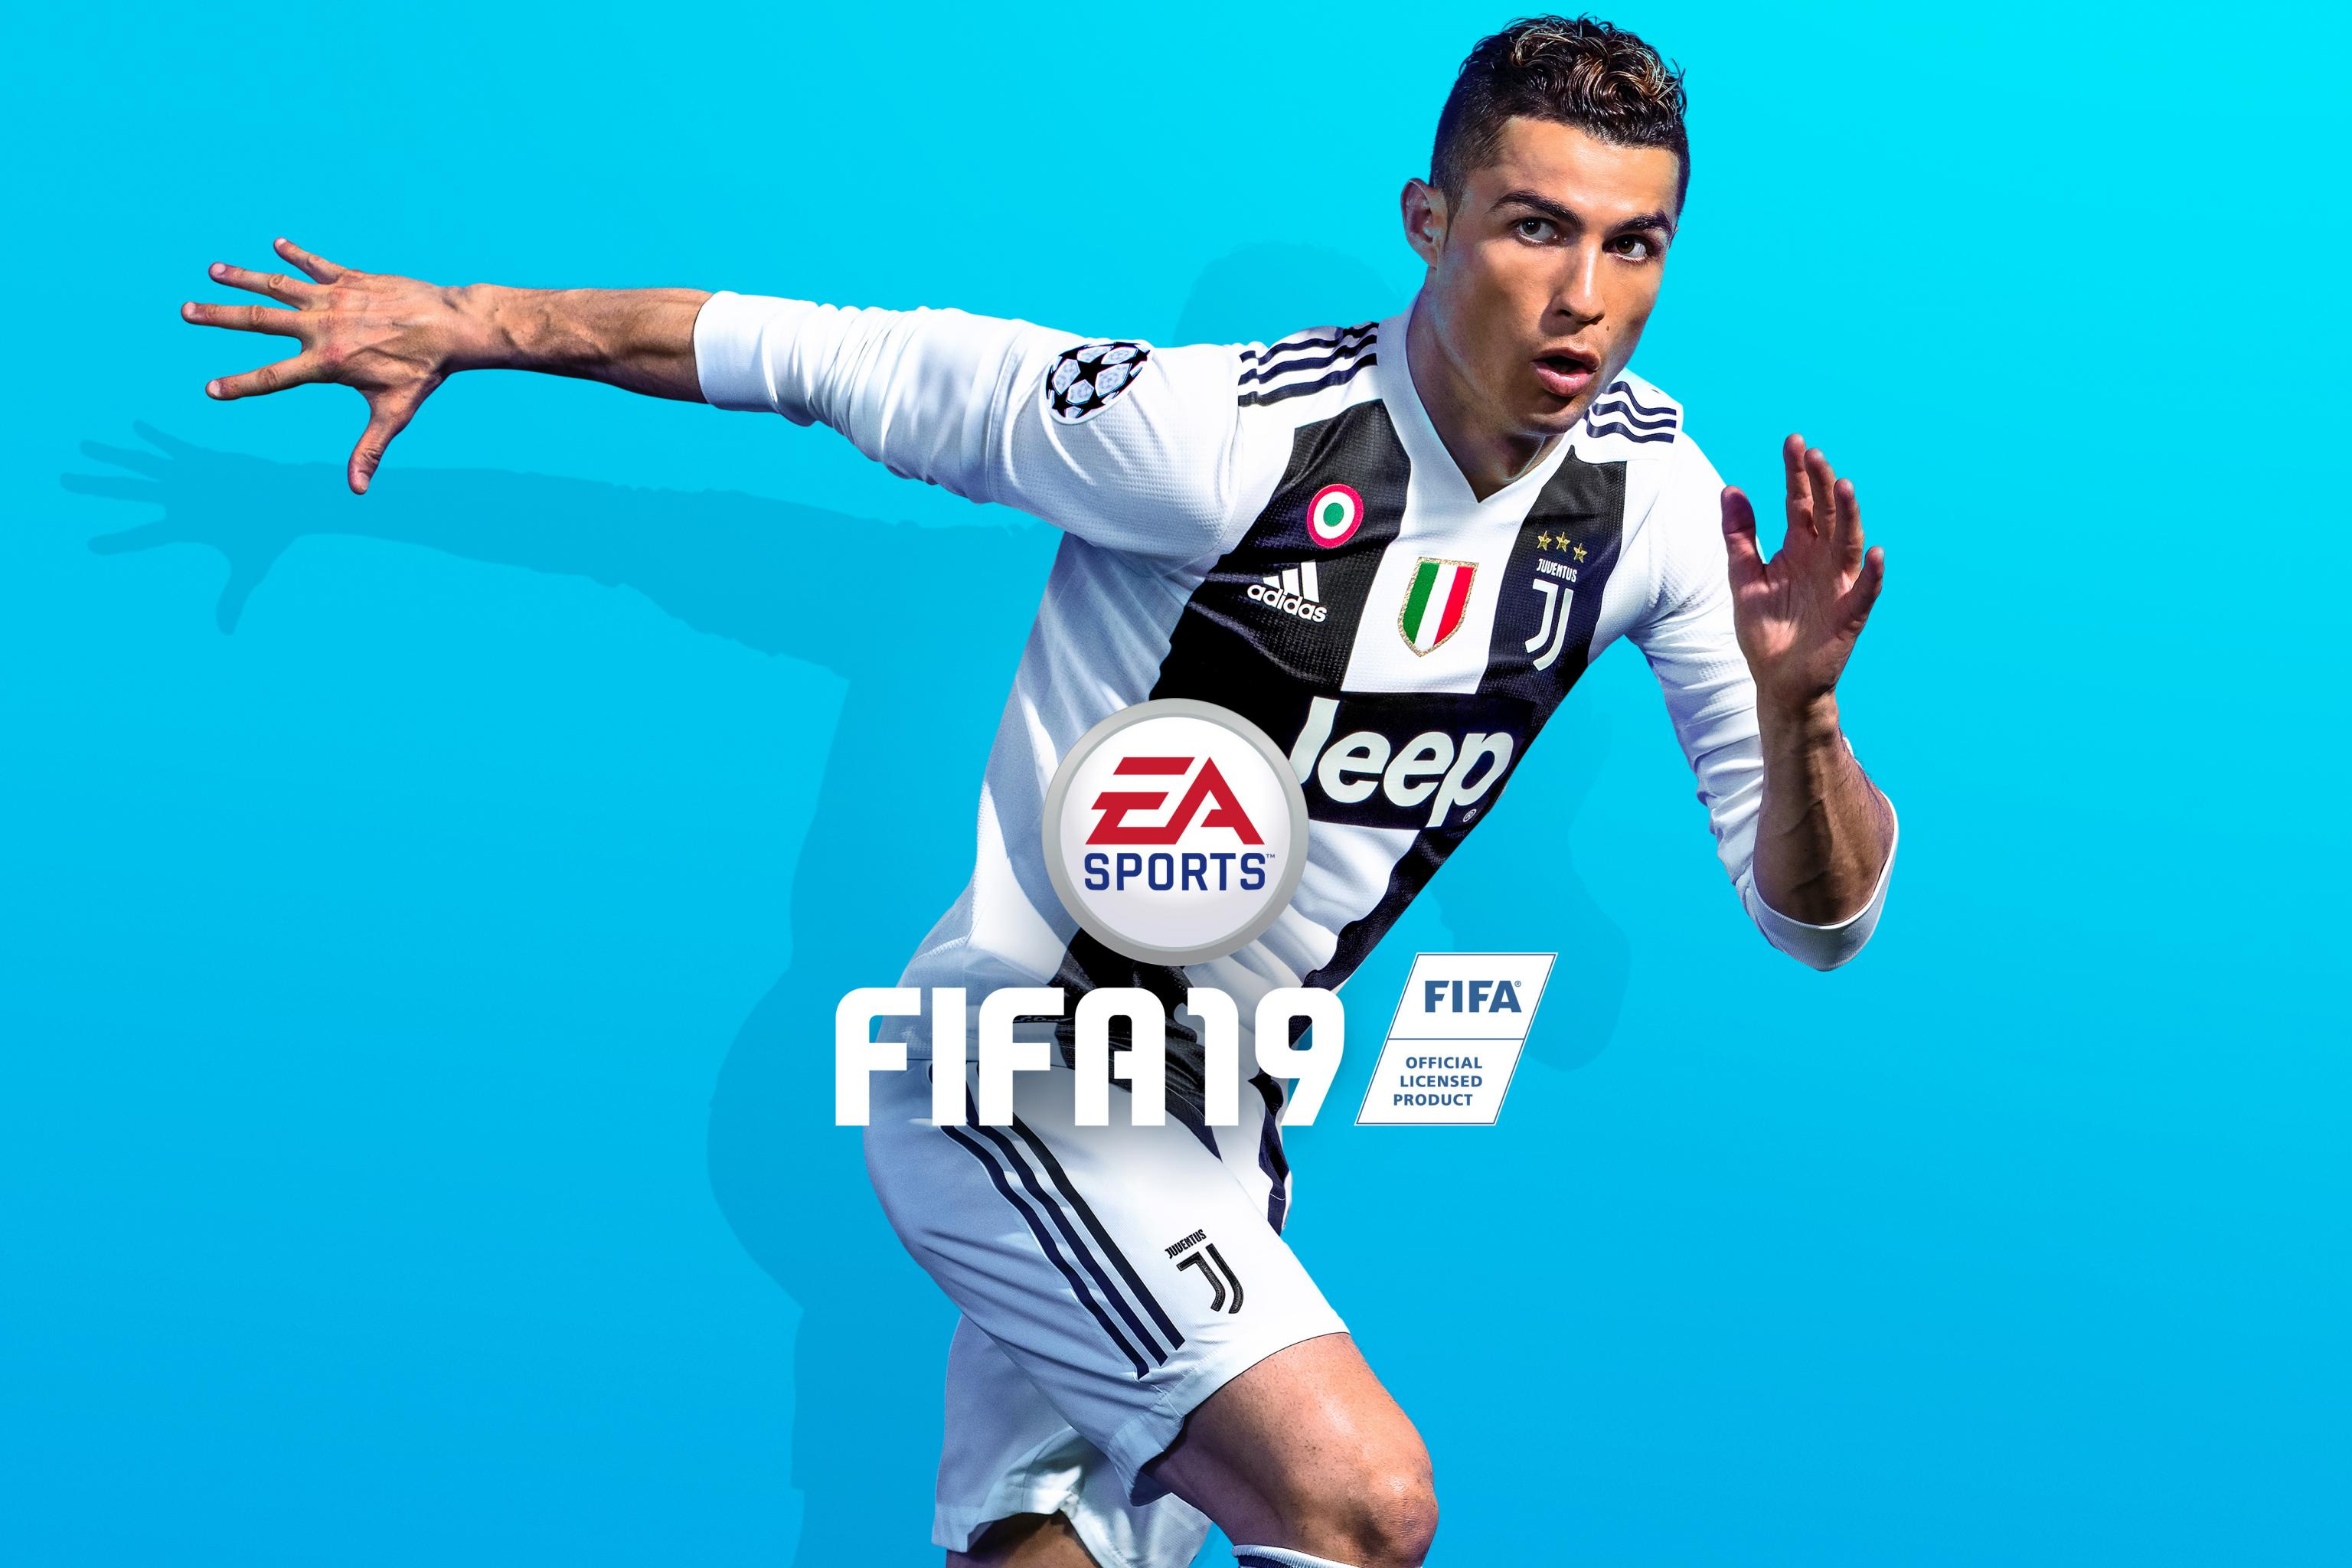 fifa 19 Cristiano Ronaldo & Neymar Land FIFA 19 Cover [Watch] 75da9a20a992ae7b8b1d18f6ee3fb8a4 crop north